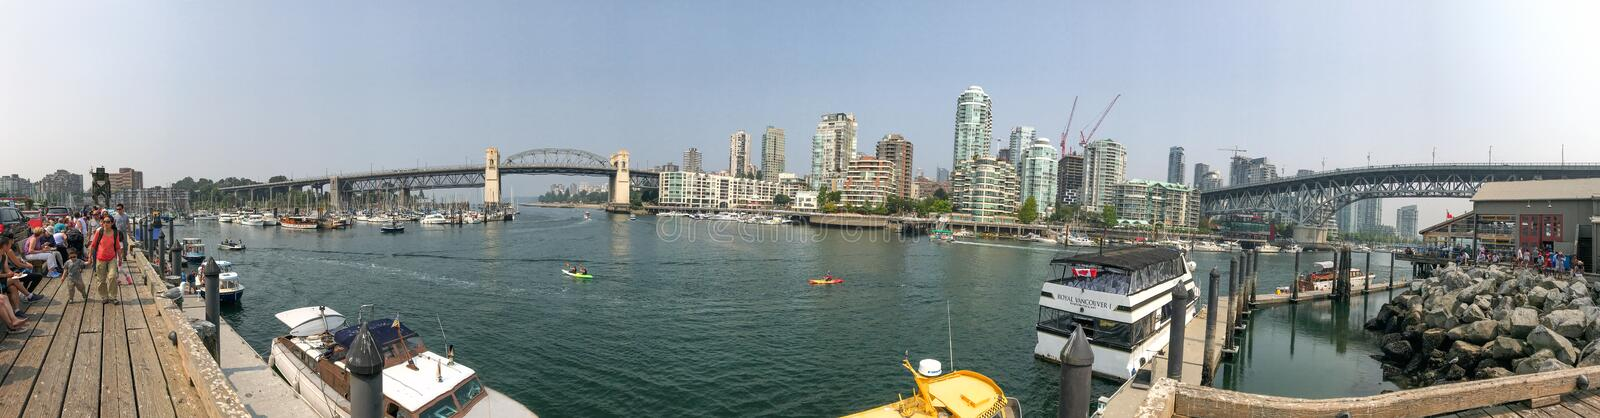 VANCOUVER, CANADA - AUGUST 10, 2017: Panoramic view of Granville Island skyline. Vancouver attracts 20 million people annually royalty free stock photography